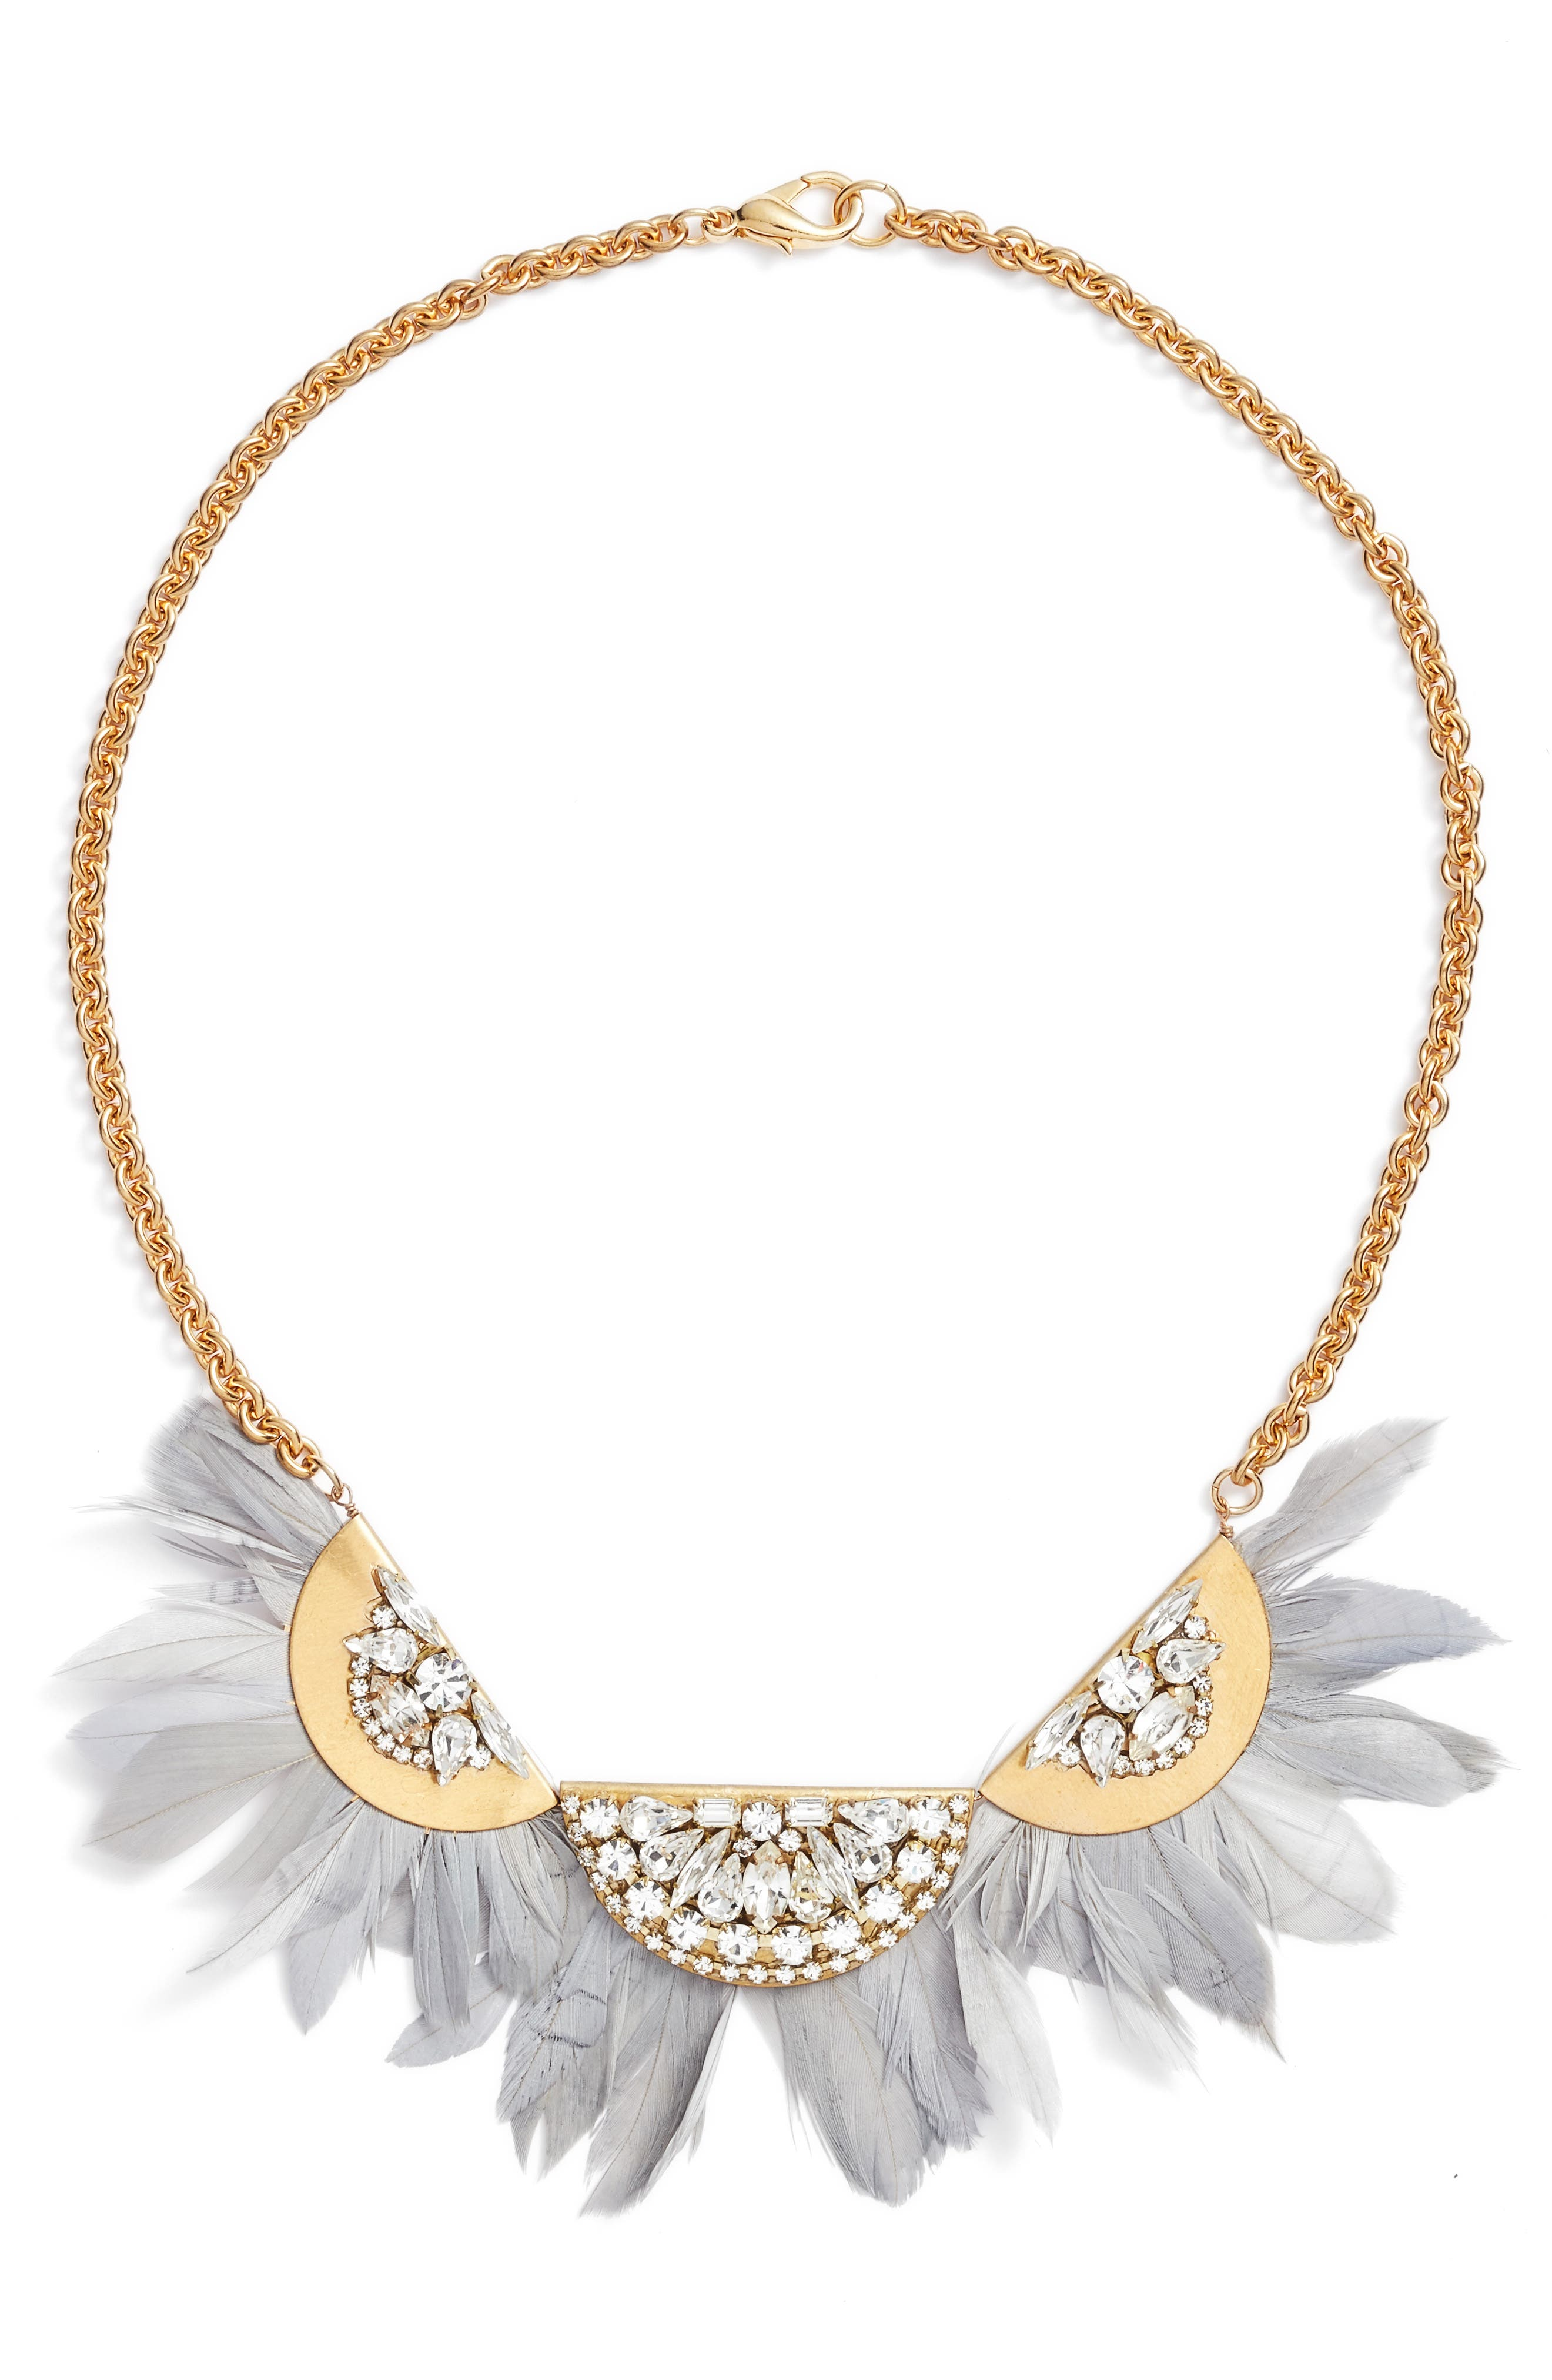 Alternate Image 1 Selected - Sandy Hyun Feather Bib Necklace